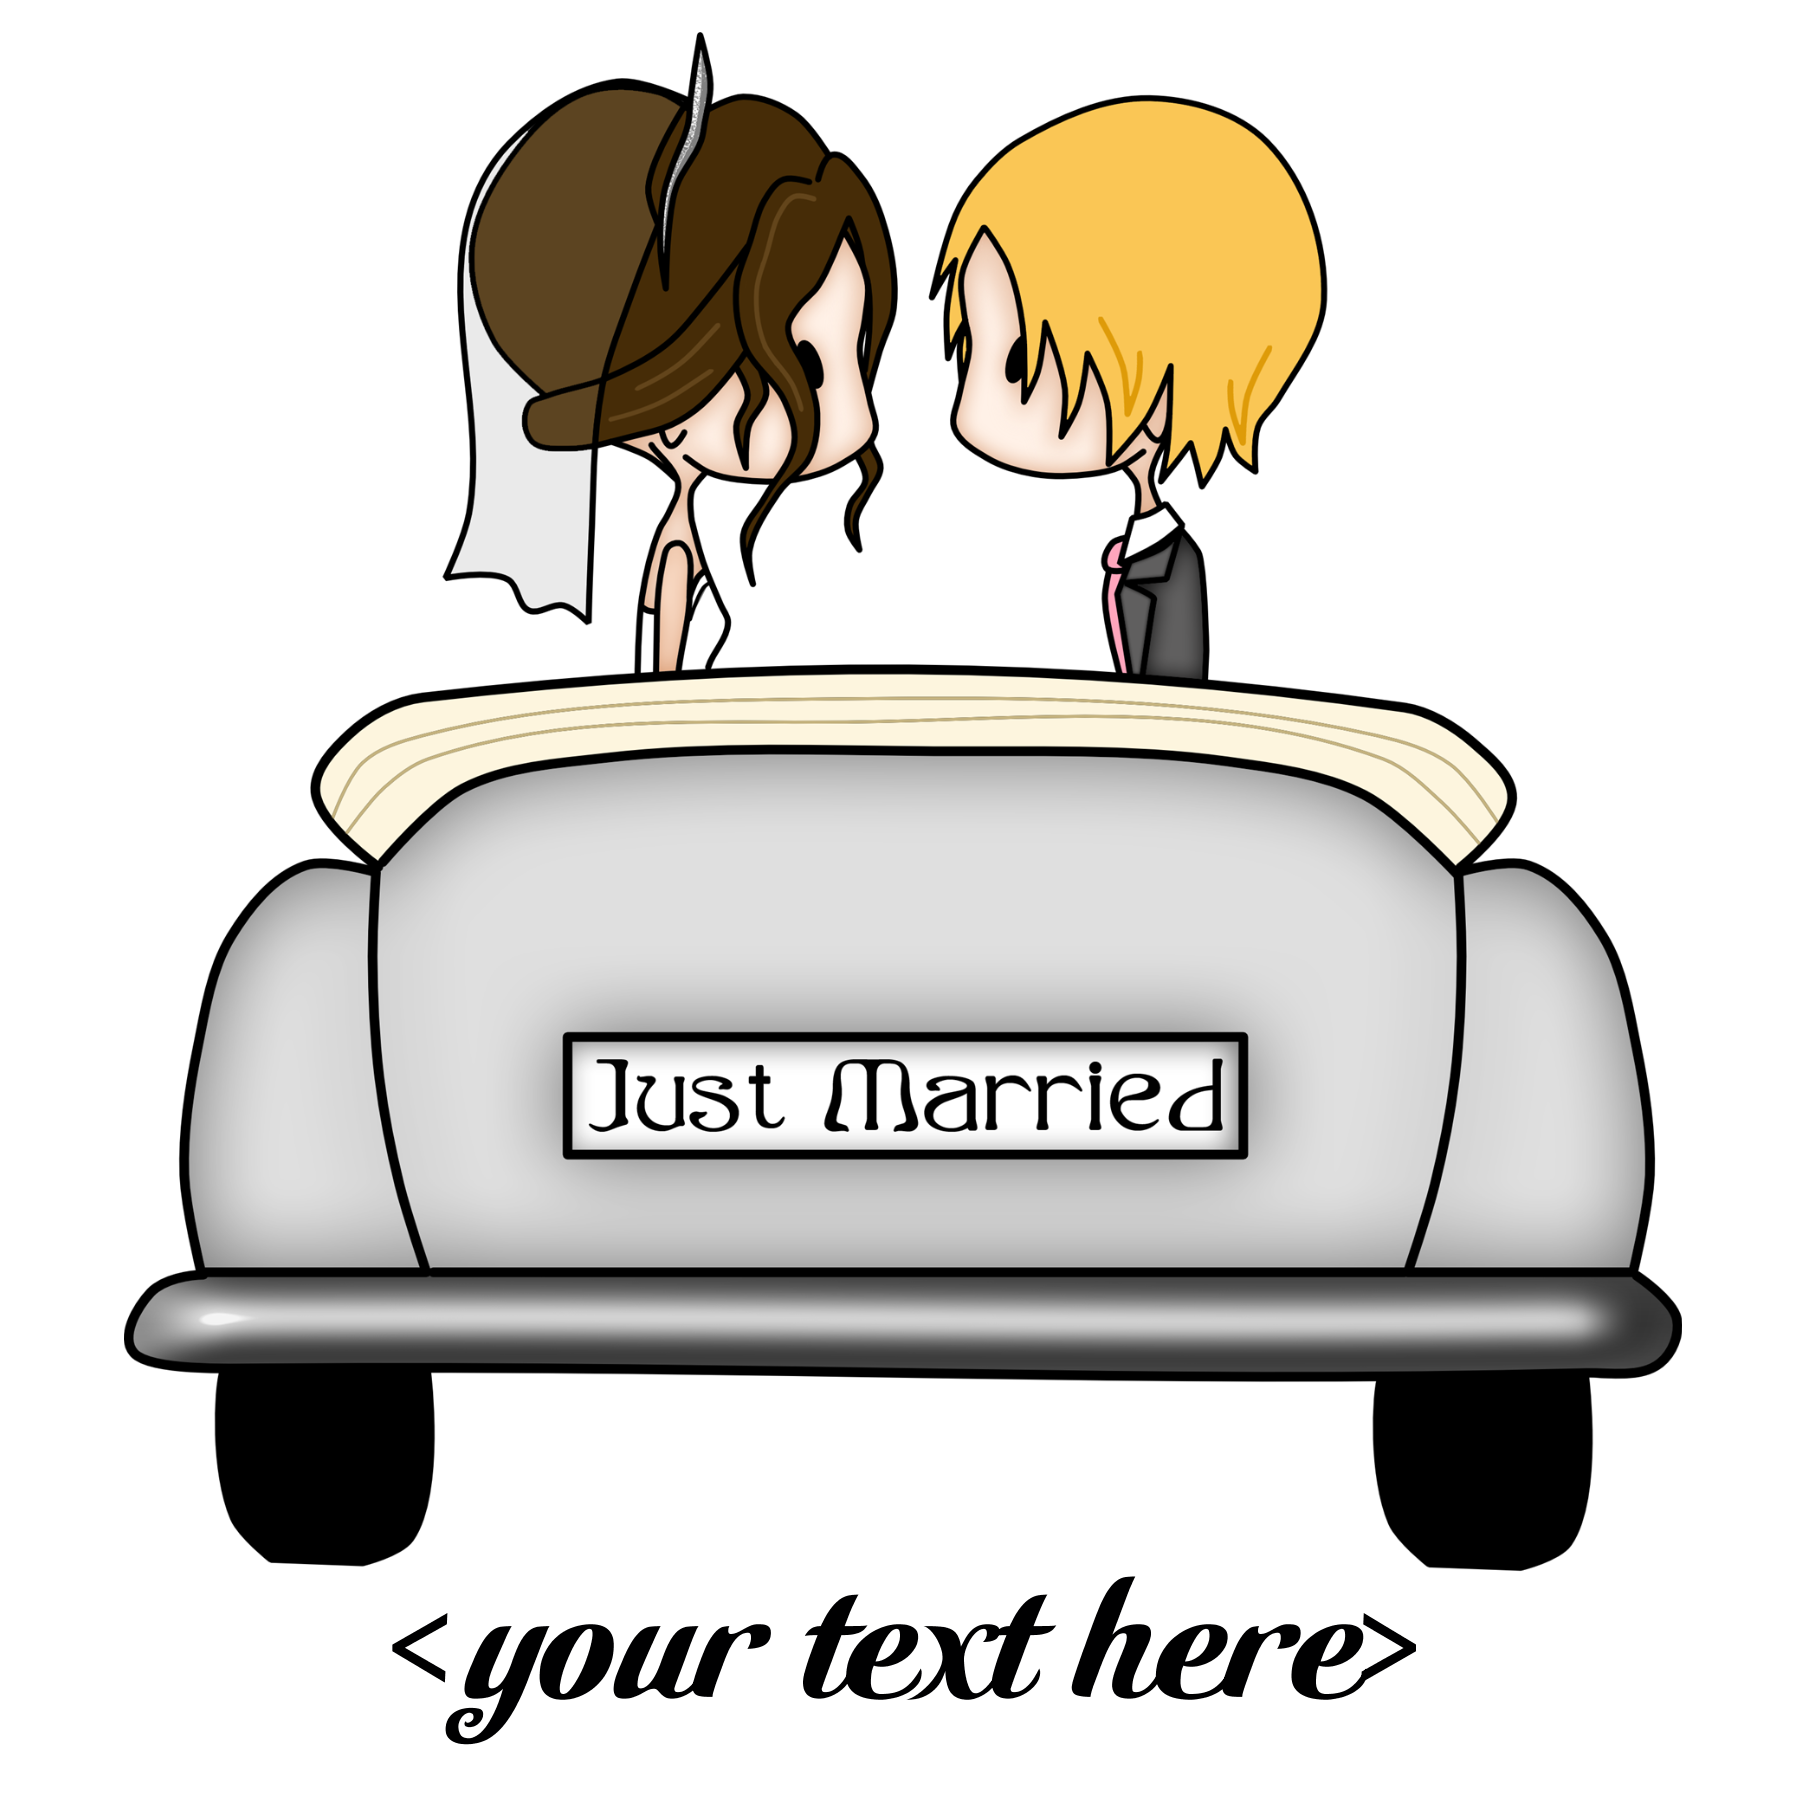 Loading car clipart stock Just Married Clip Art stock